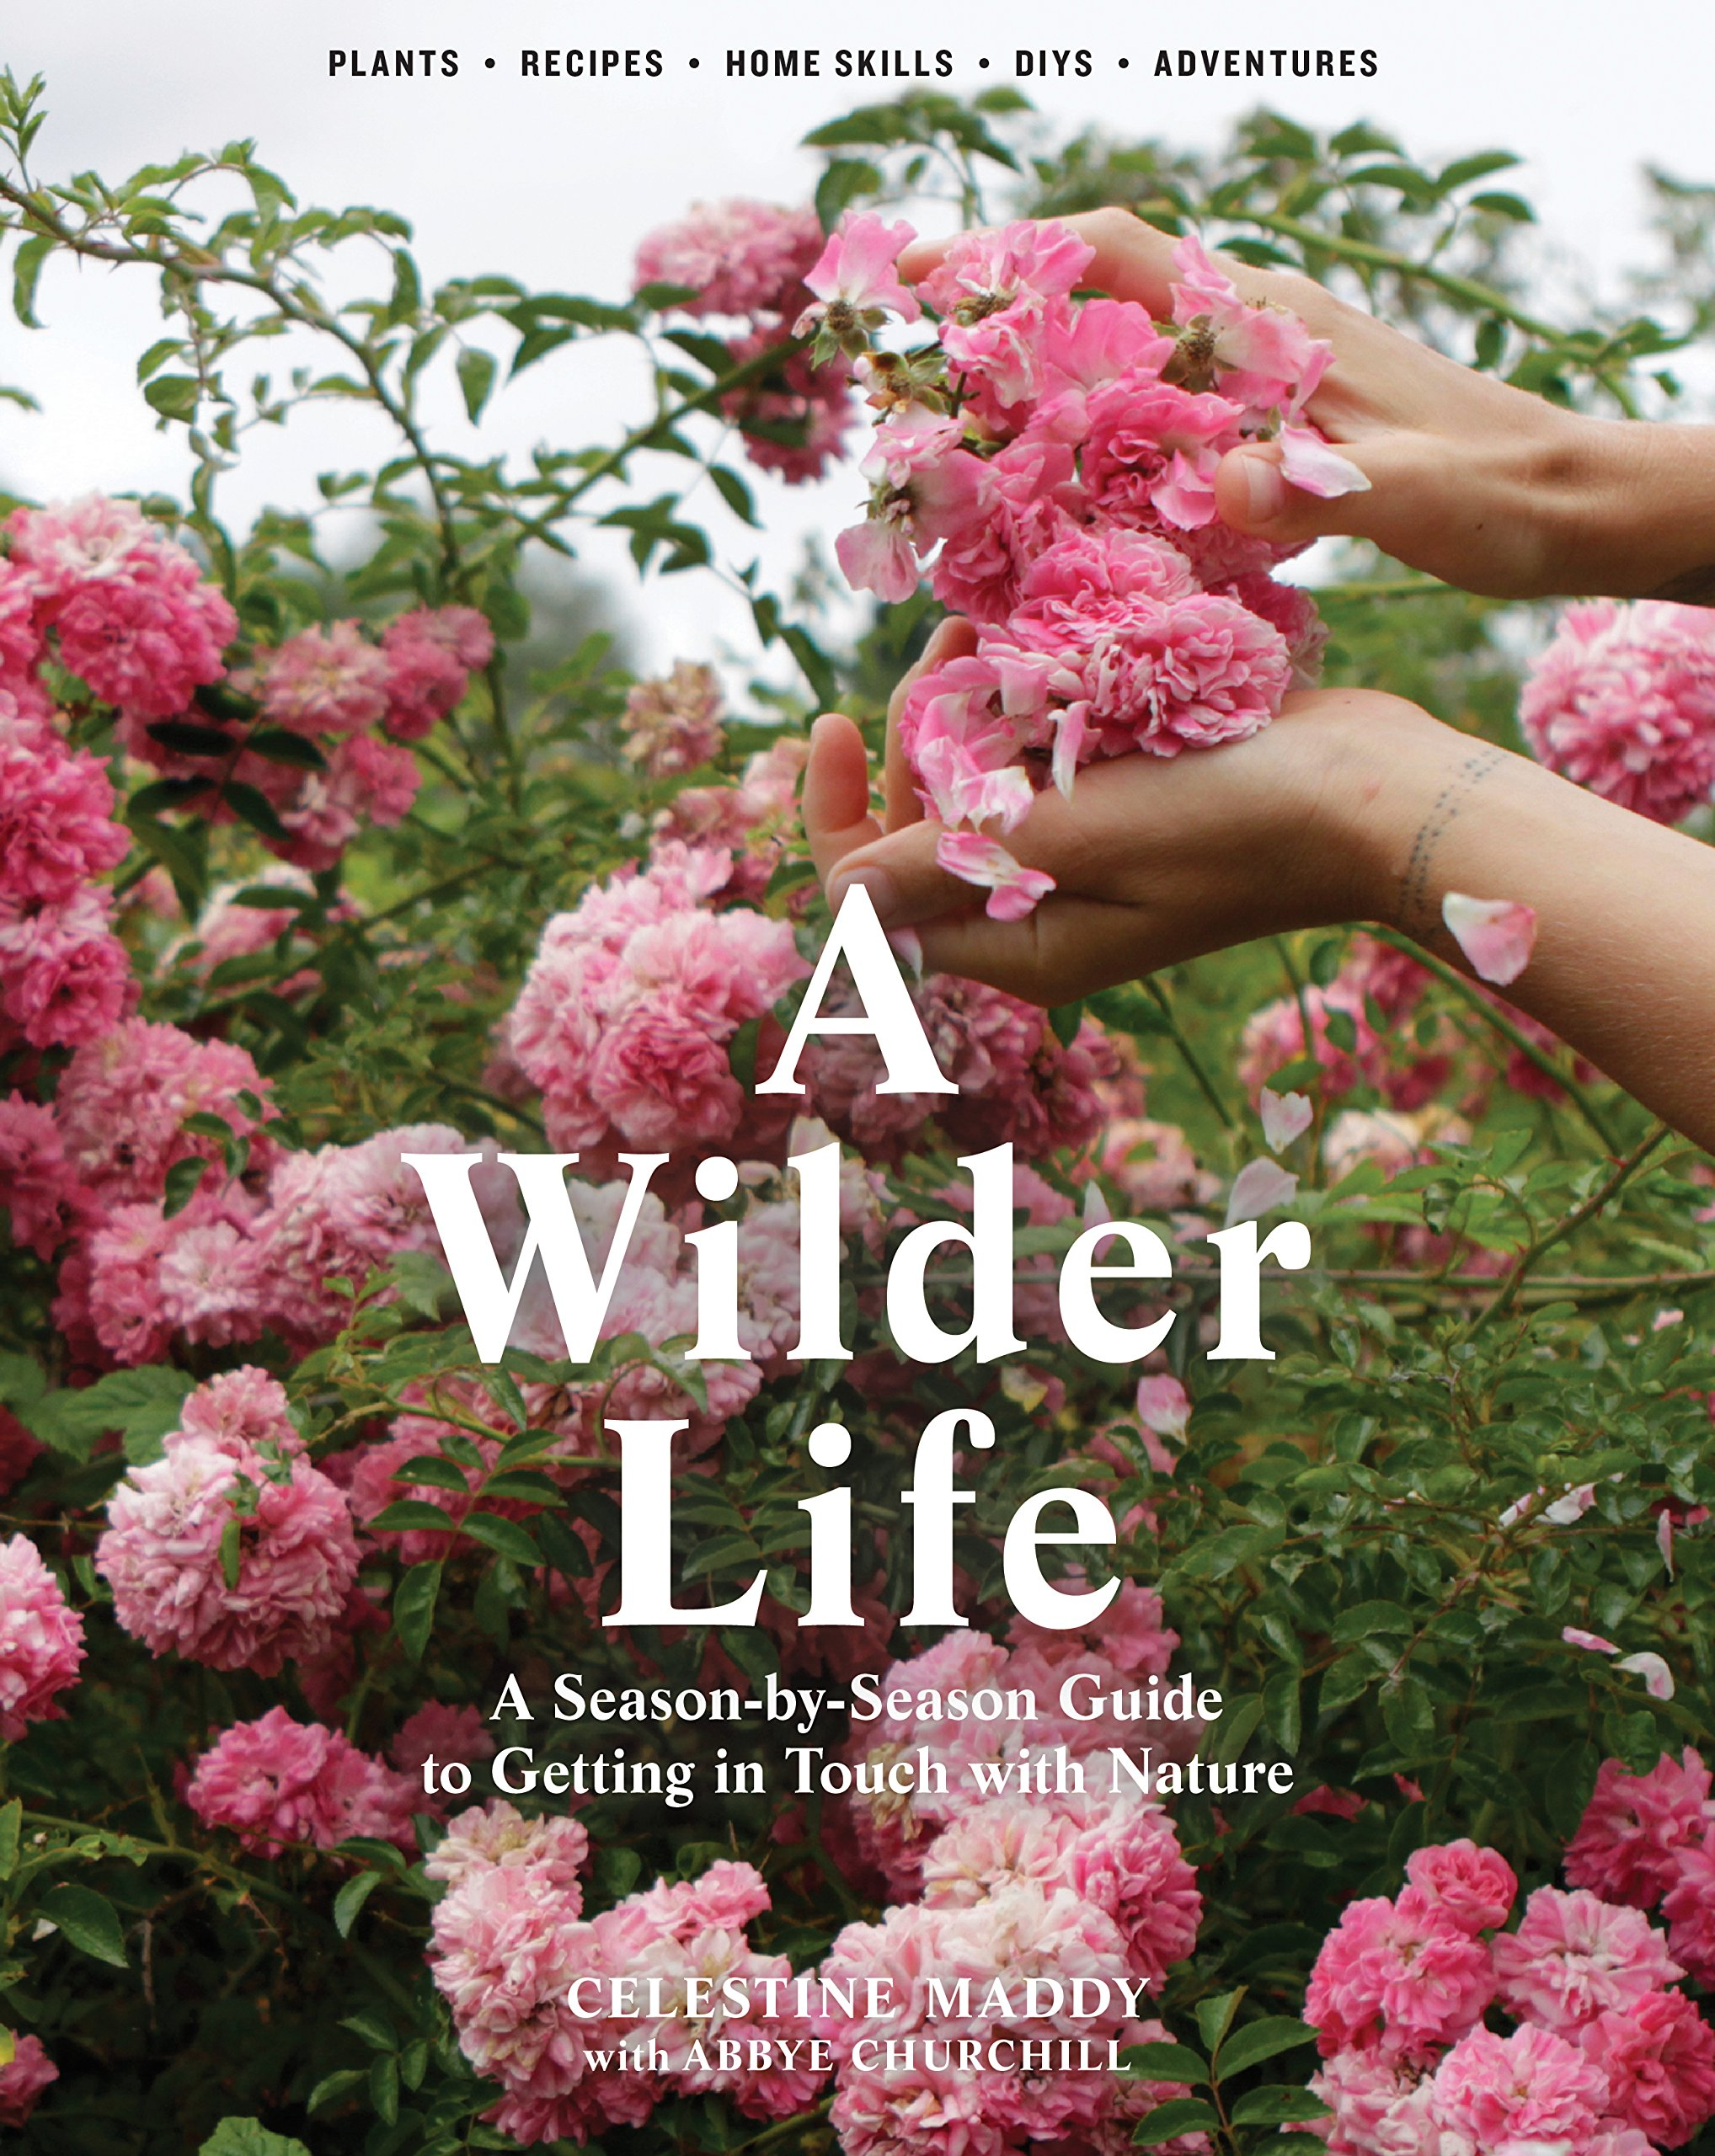 A wilder life : a season-by-season guide to getting in touch with                nature